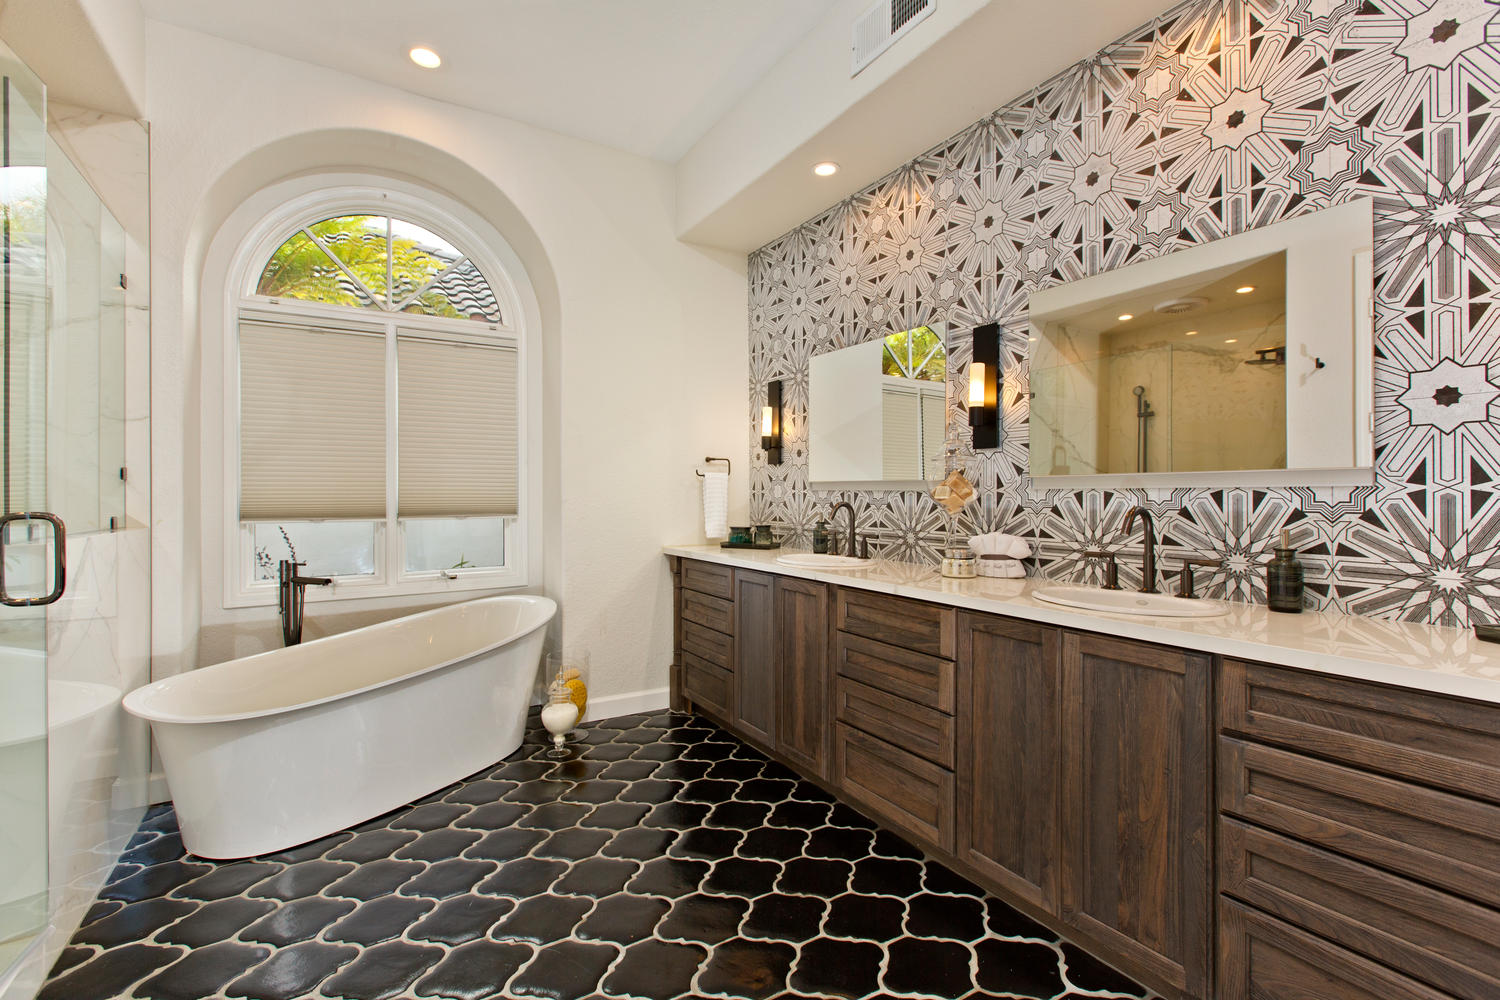 Houzz Room Of The Day Art Deco Tile Dazzles In A Master Bathroom Signature Designs Kitchen Bath